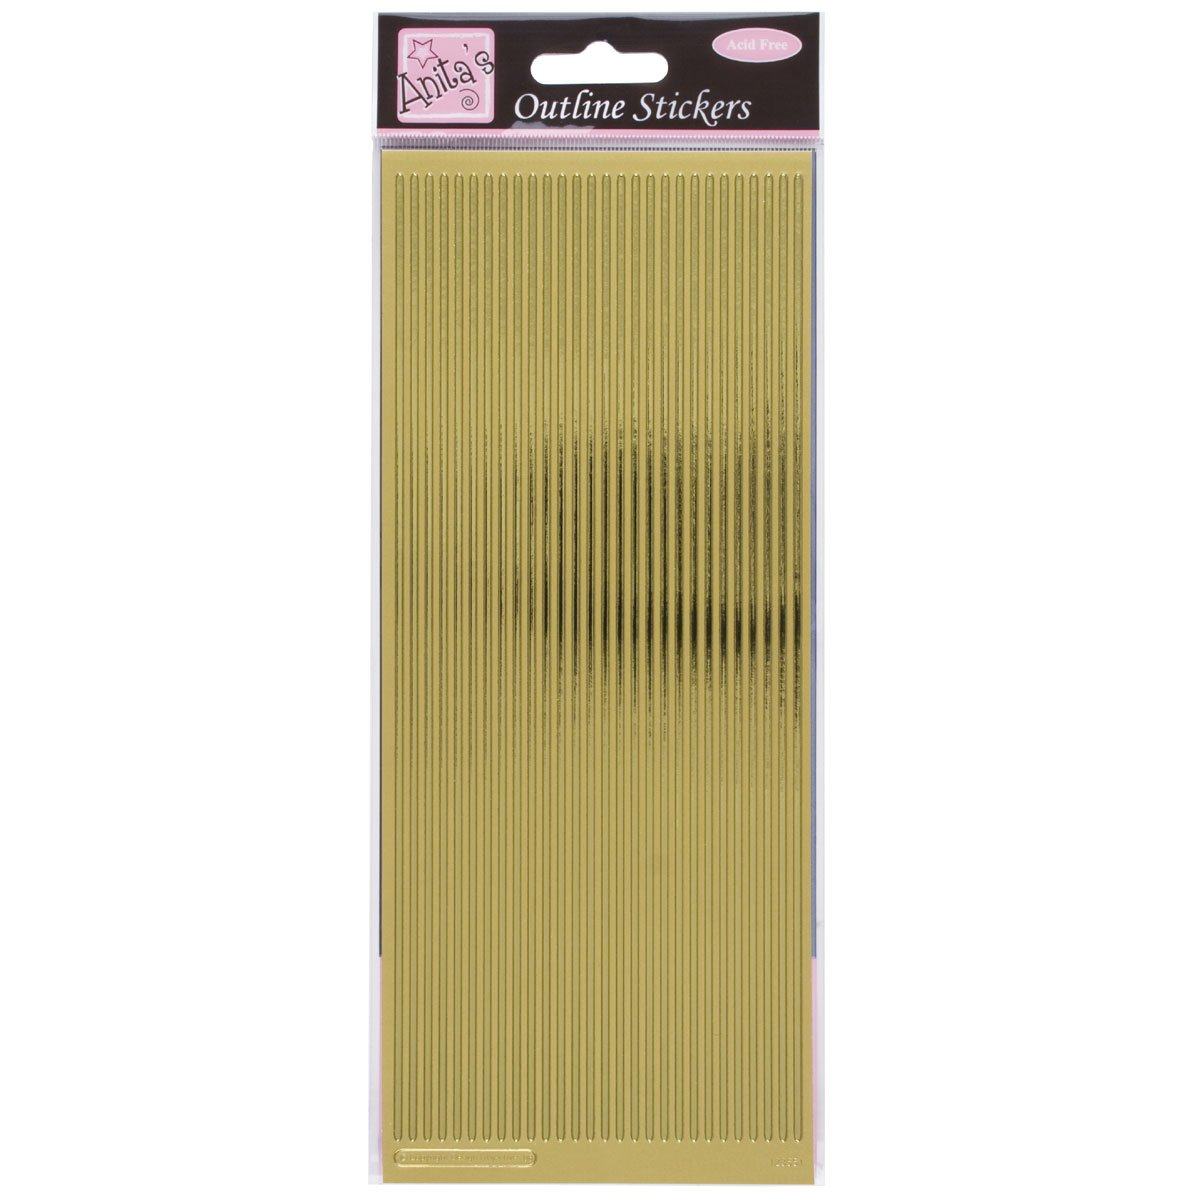 Anita's Straight Line Borders Outline Stickers - Gold docrafts 8101016